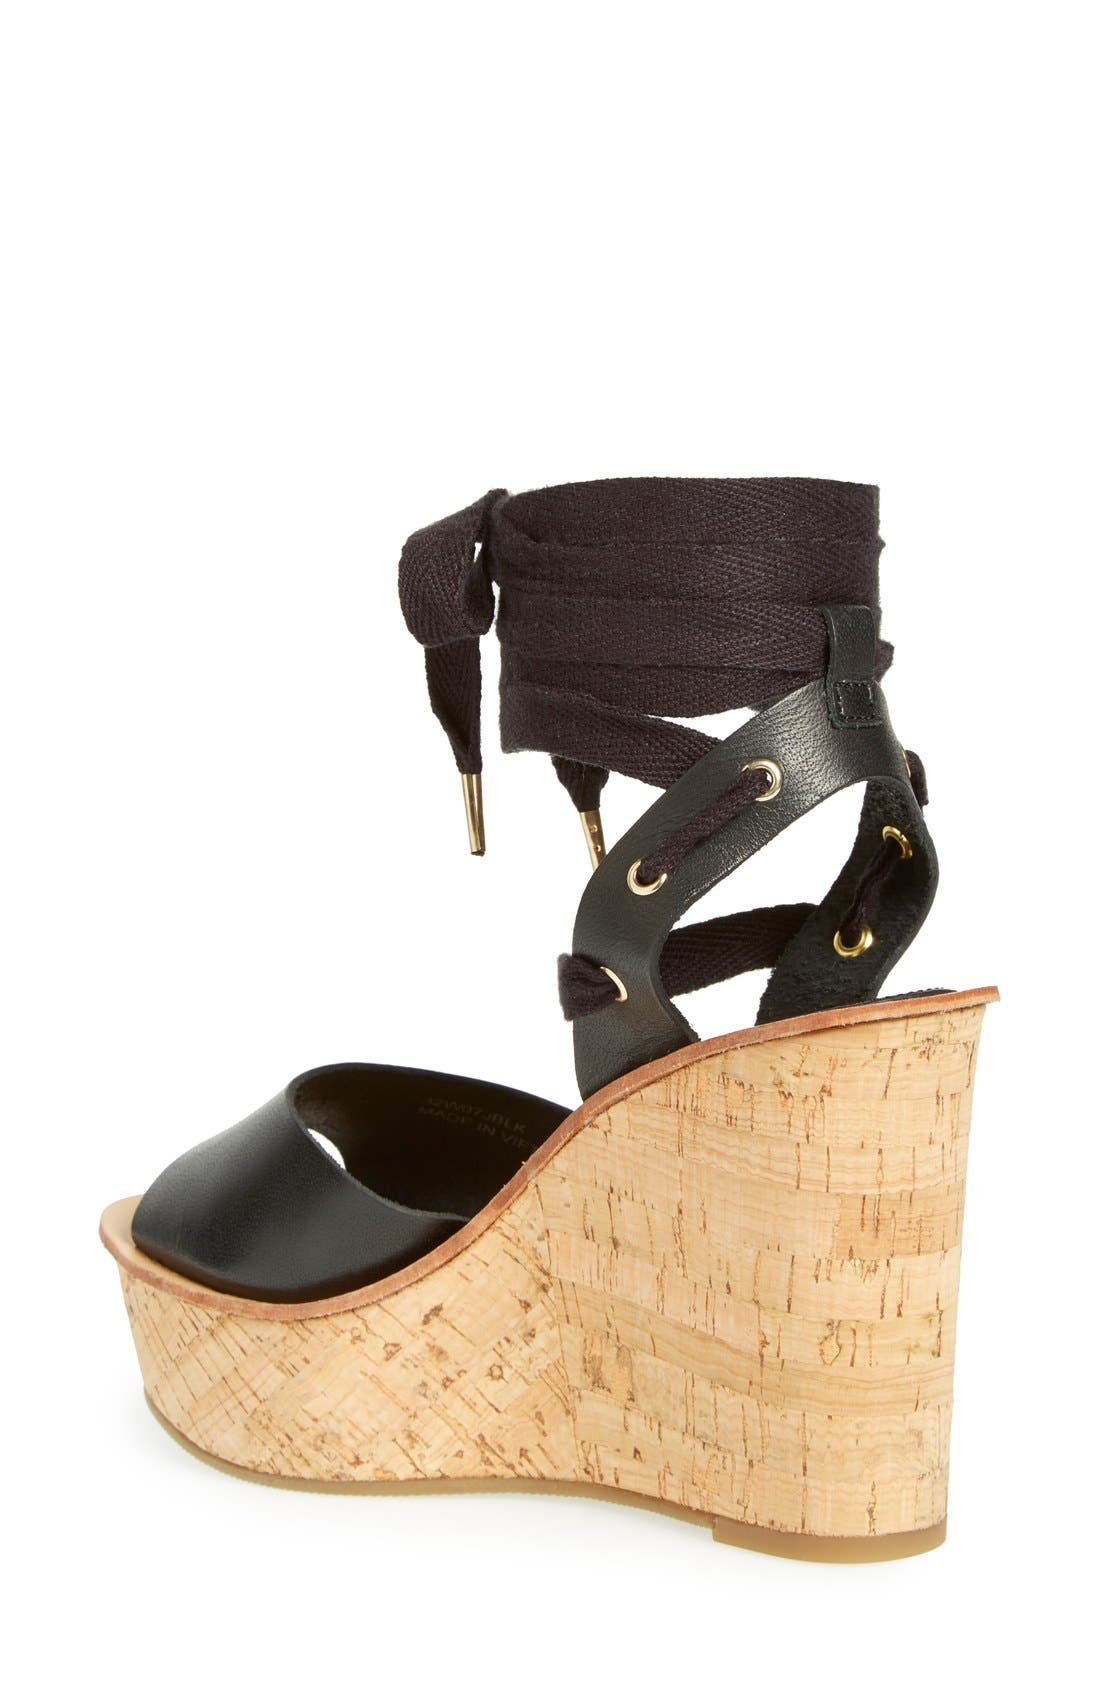 TOPSHOP, 'Wise' Platform Wedge Sandal, Alternate thumbnail 2, color, 001